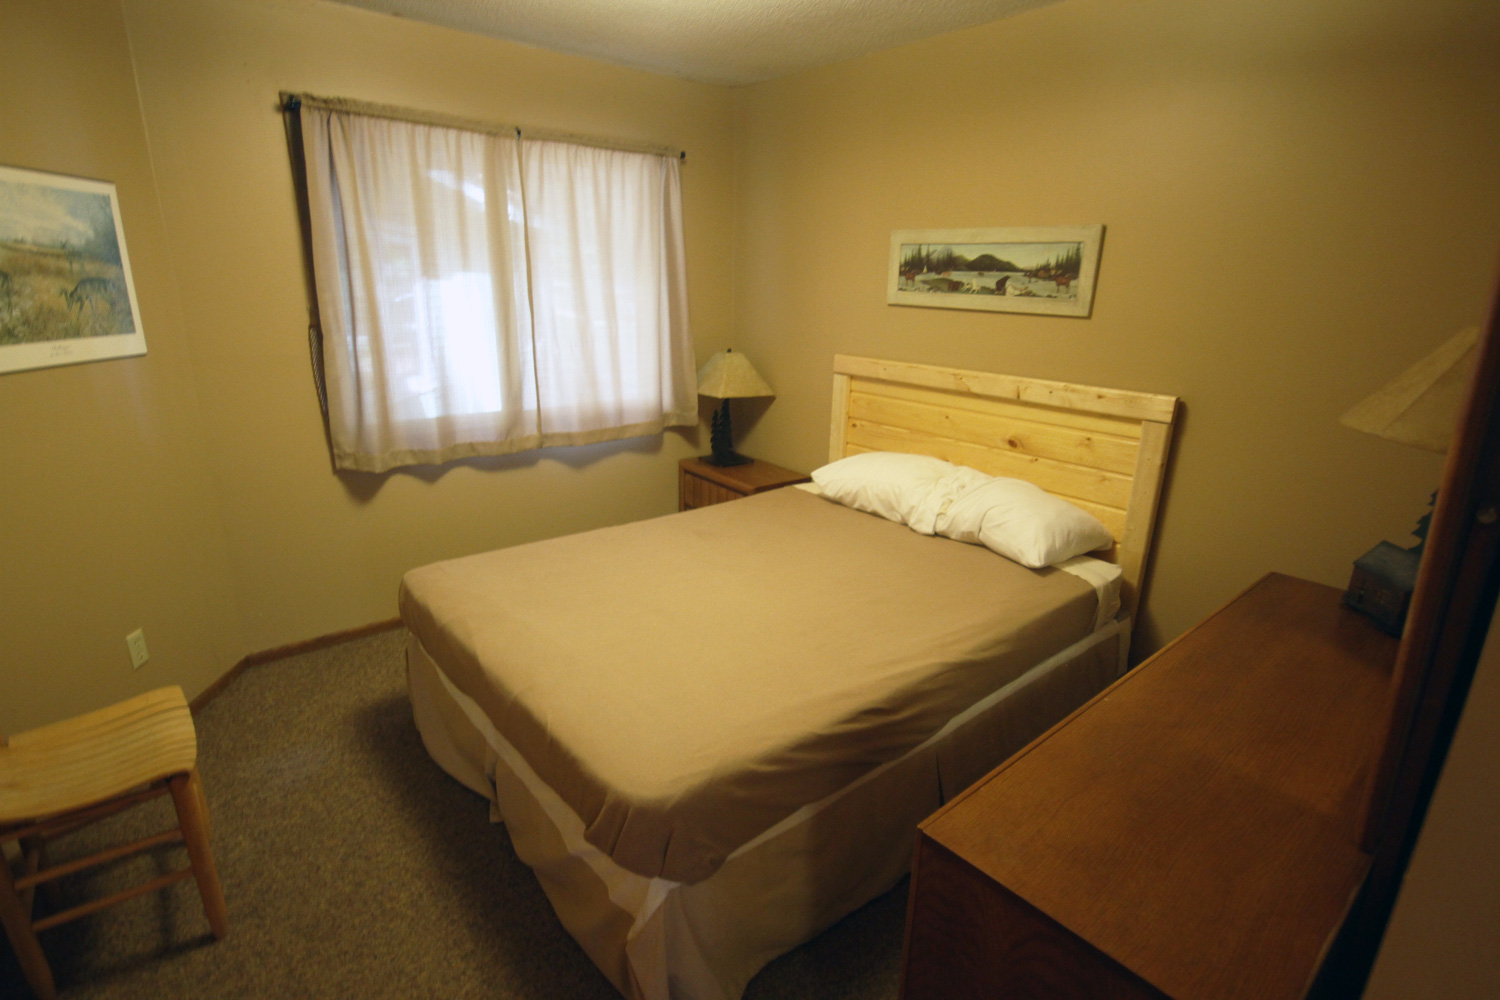 Bedroom with Queen bed - close to the main bathroom